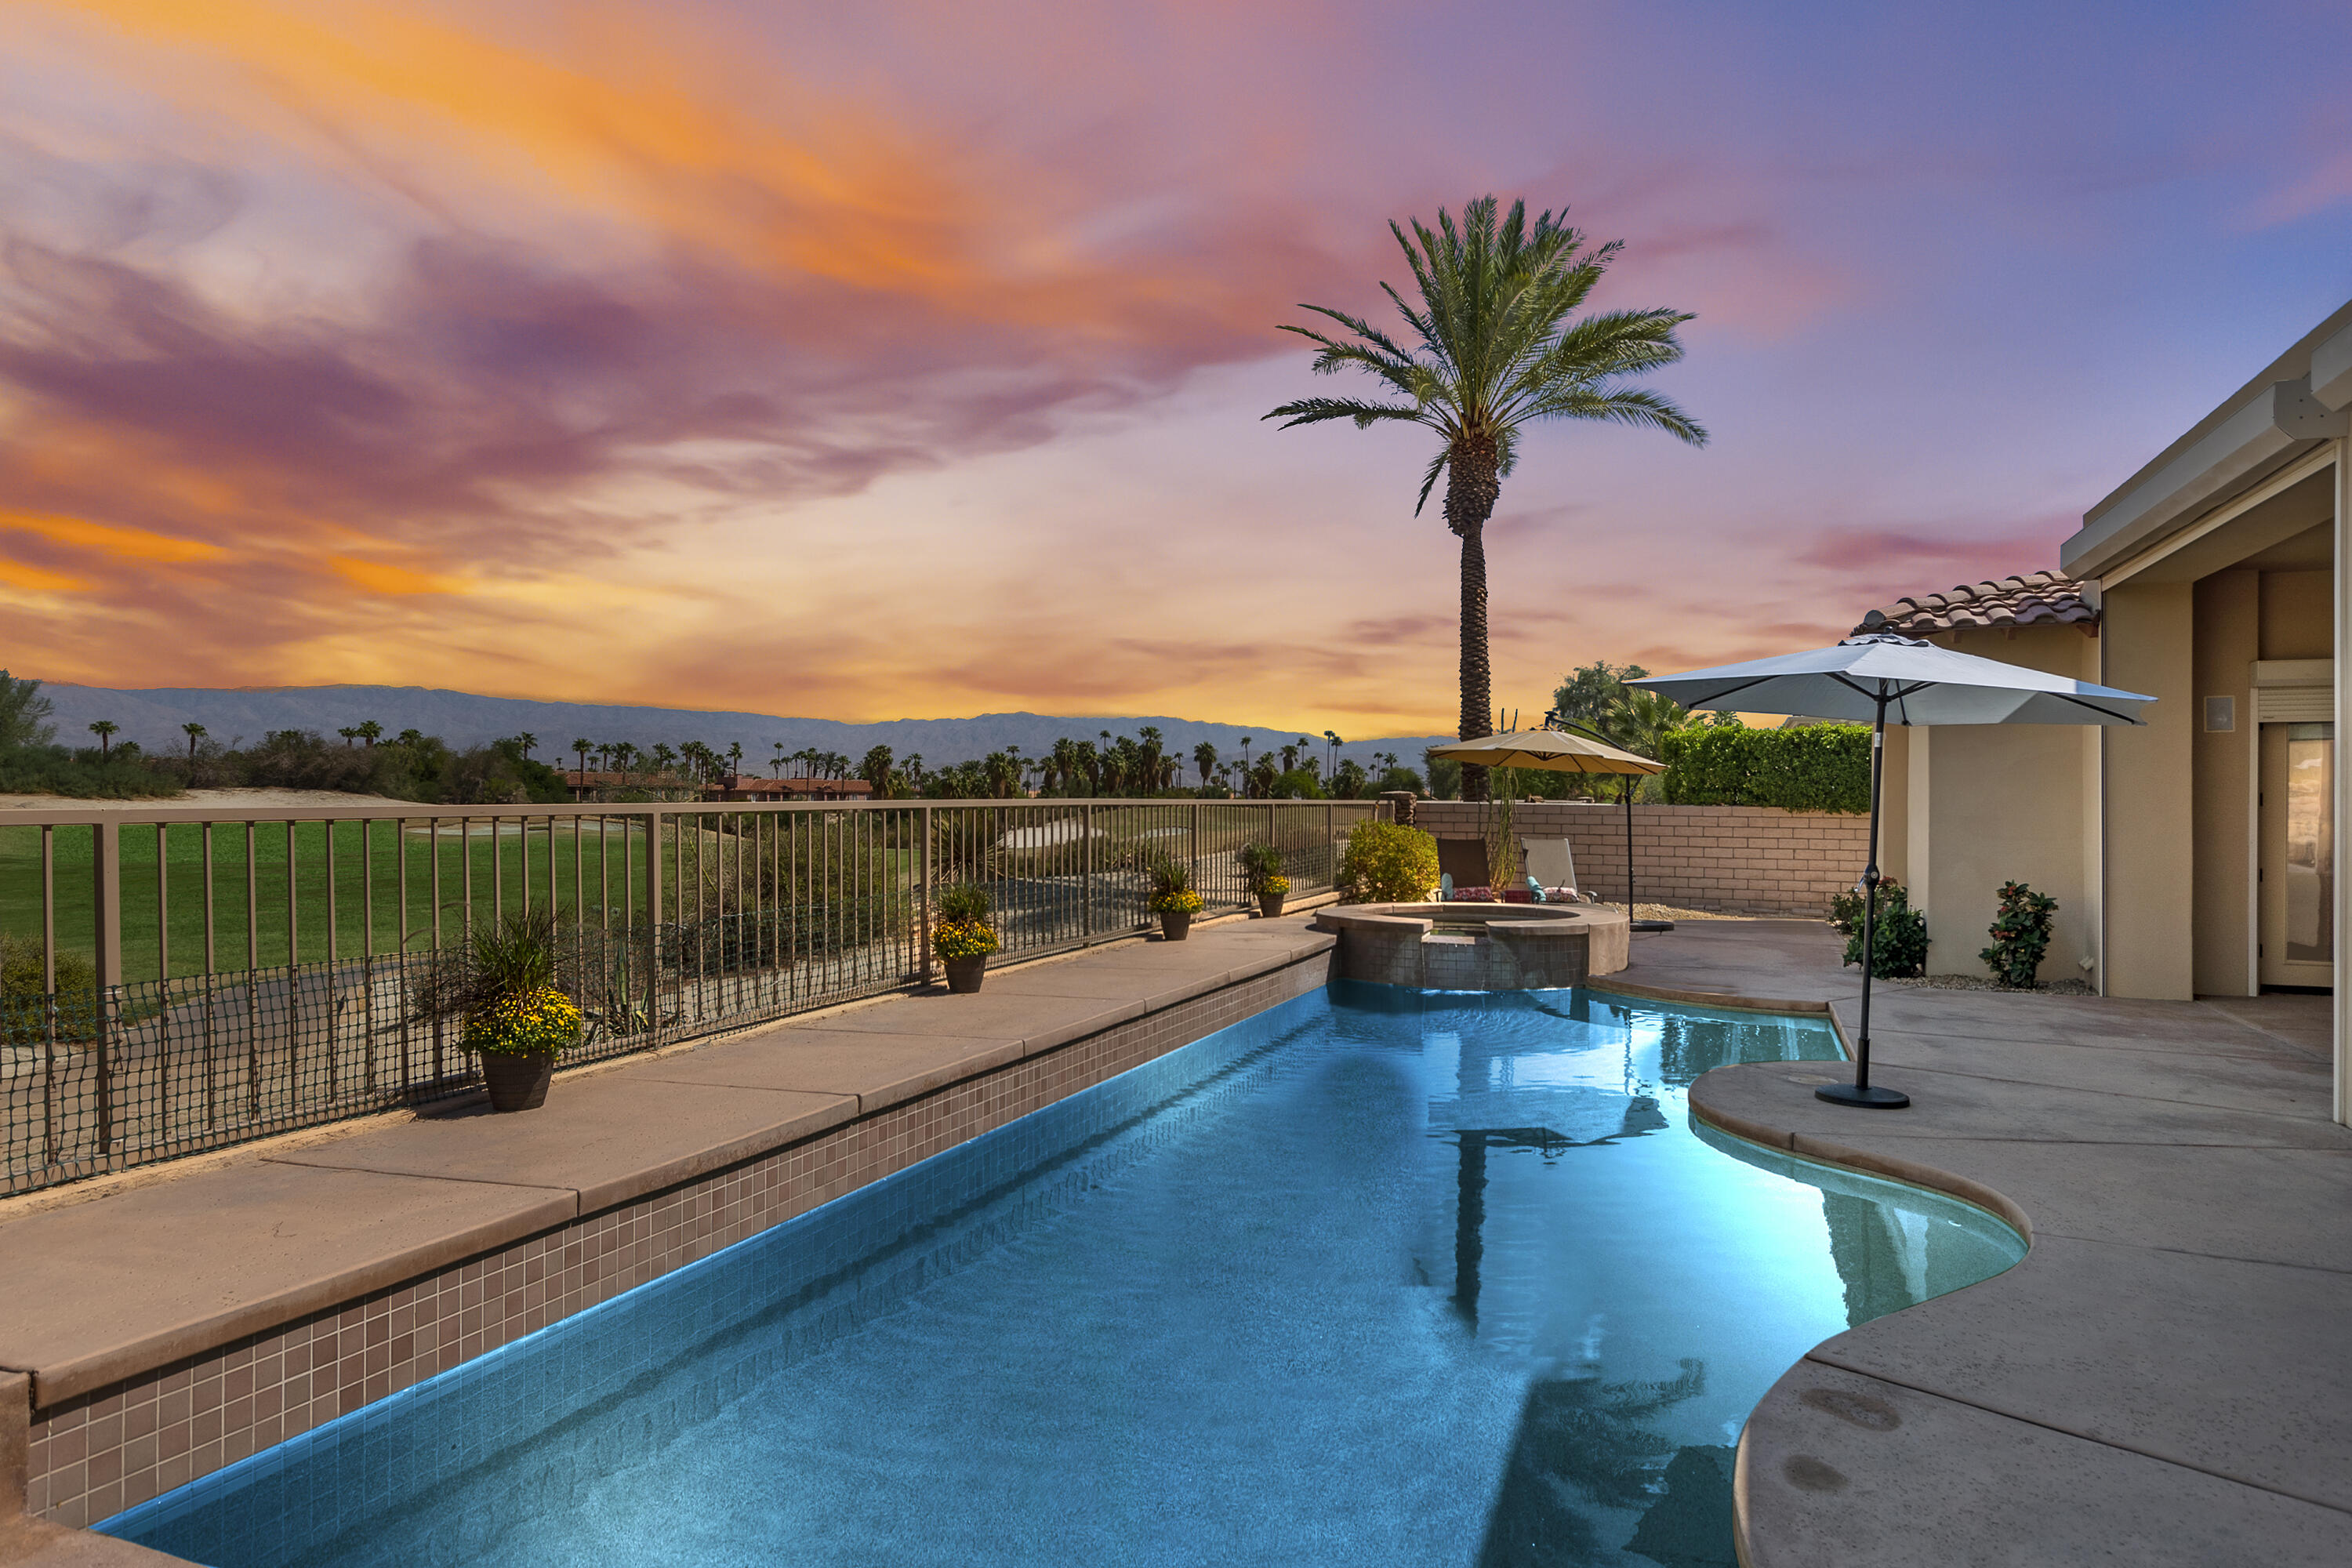 The only golf course view home currently on market in Montecito.  This home is in immaculate condition including pre-paid solar lease, security shutters and many other features.  Open floor plan with double doors onto large covered patio overlooking the pool, spa and Desert Willow Golf Course.  Upgrades include: added insulation, Santa Barbara (smooth) exterior finish, phantom screens on all external doors, epoxy flooring and swamp cooler in the garage. Low maintenance landscaping. Patio furniture that is included is listed on Seller's inventory list.